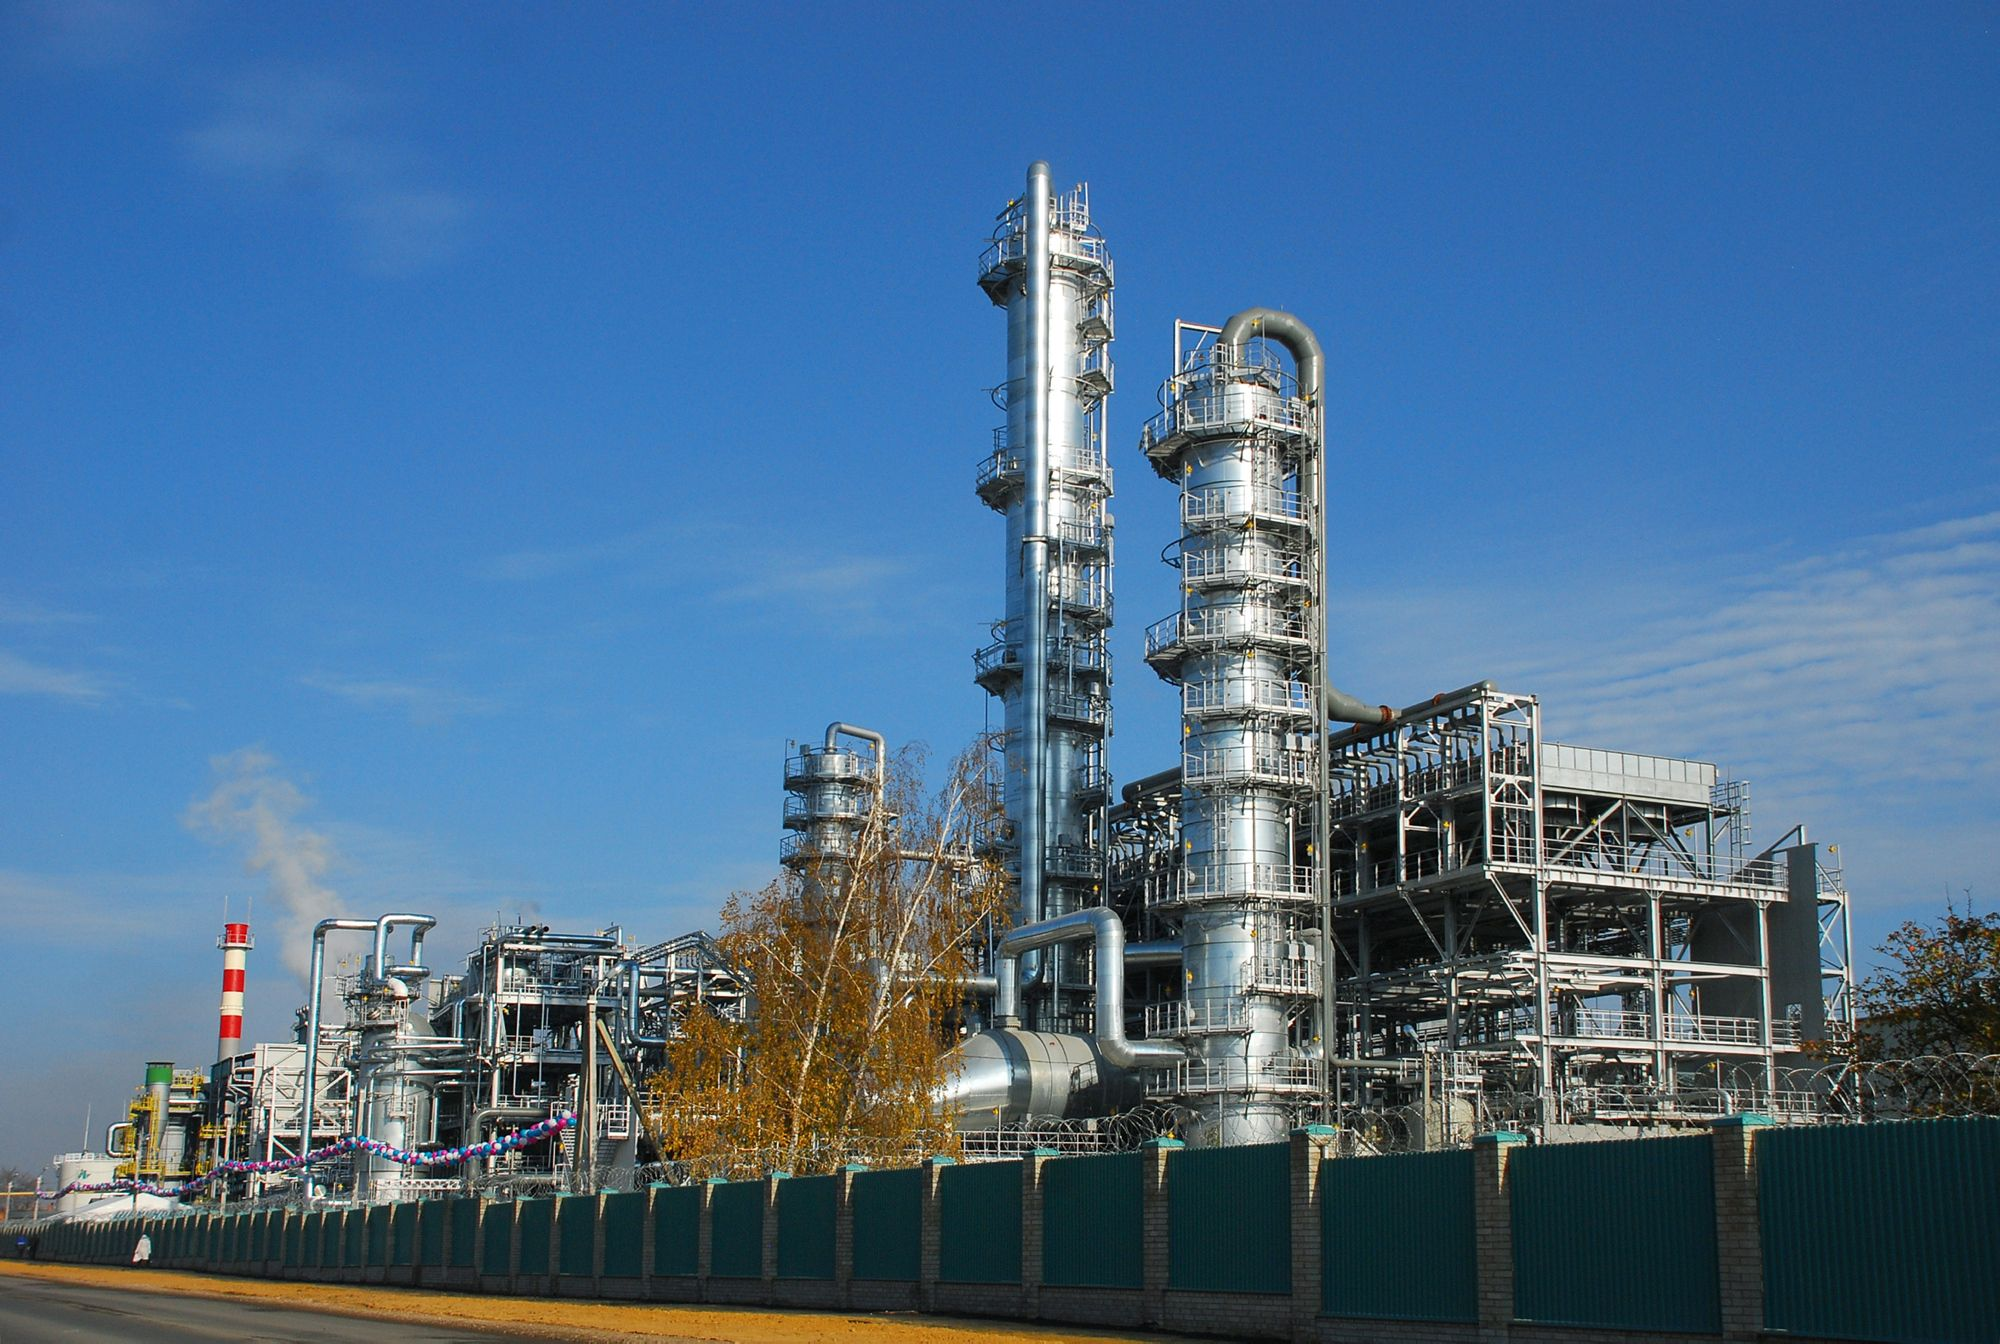 An existing Russian methanol plant based on Topsoe Technology, however much smaller than the planned 5400 MTPD plant.